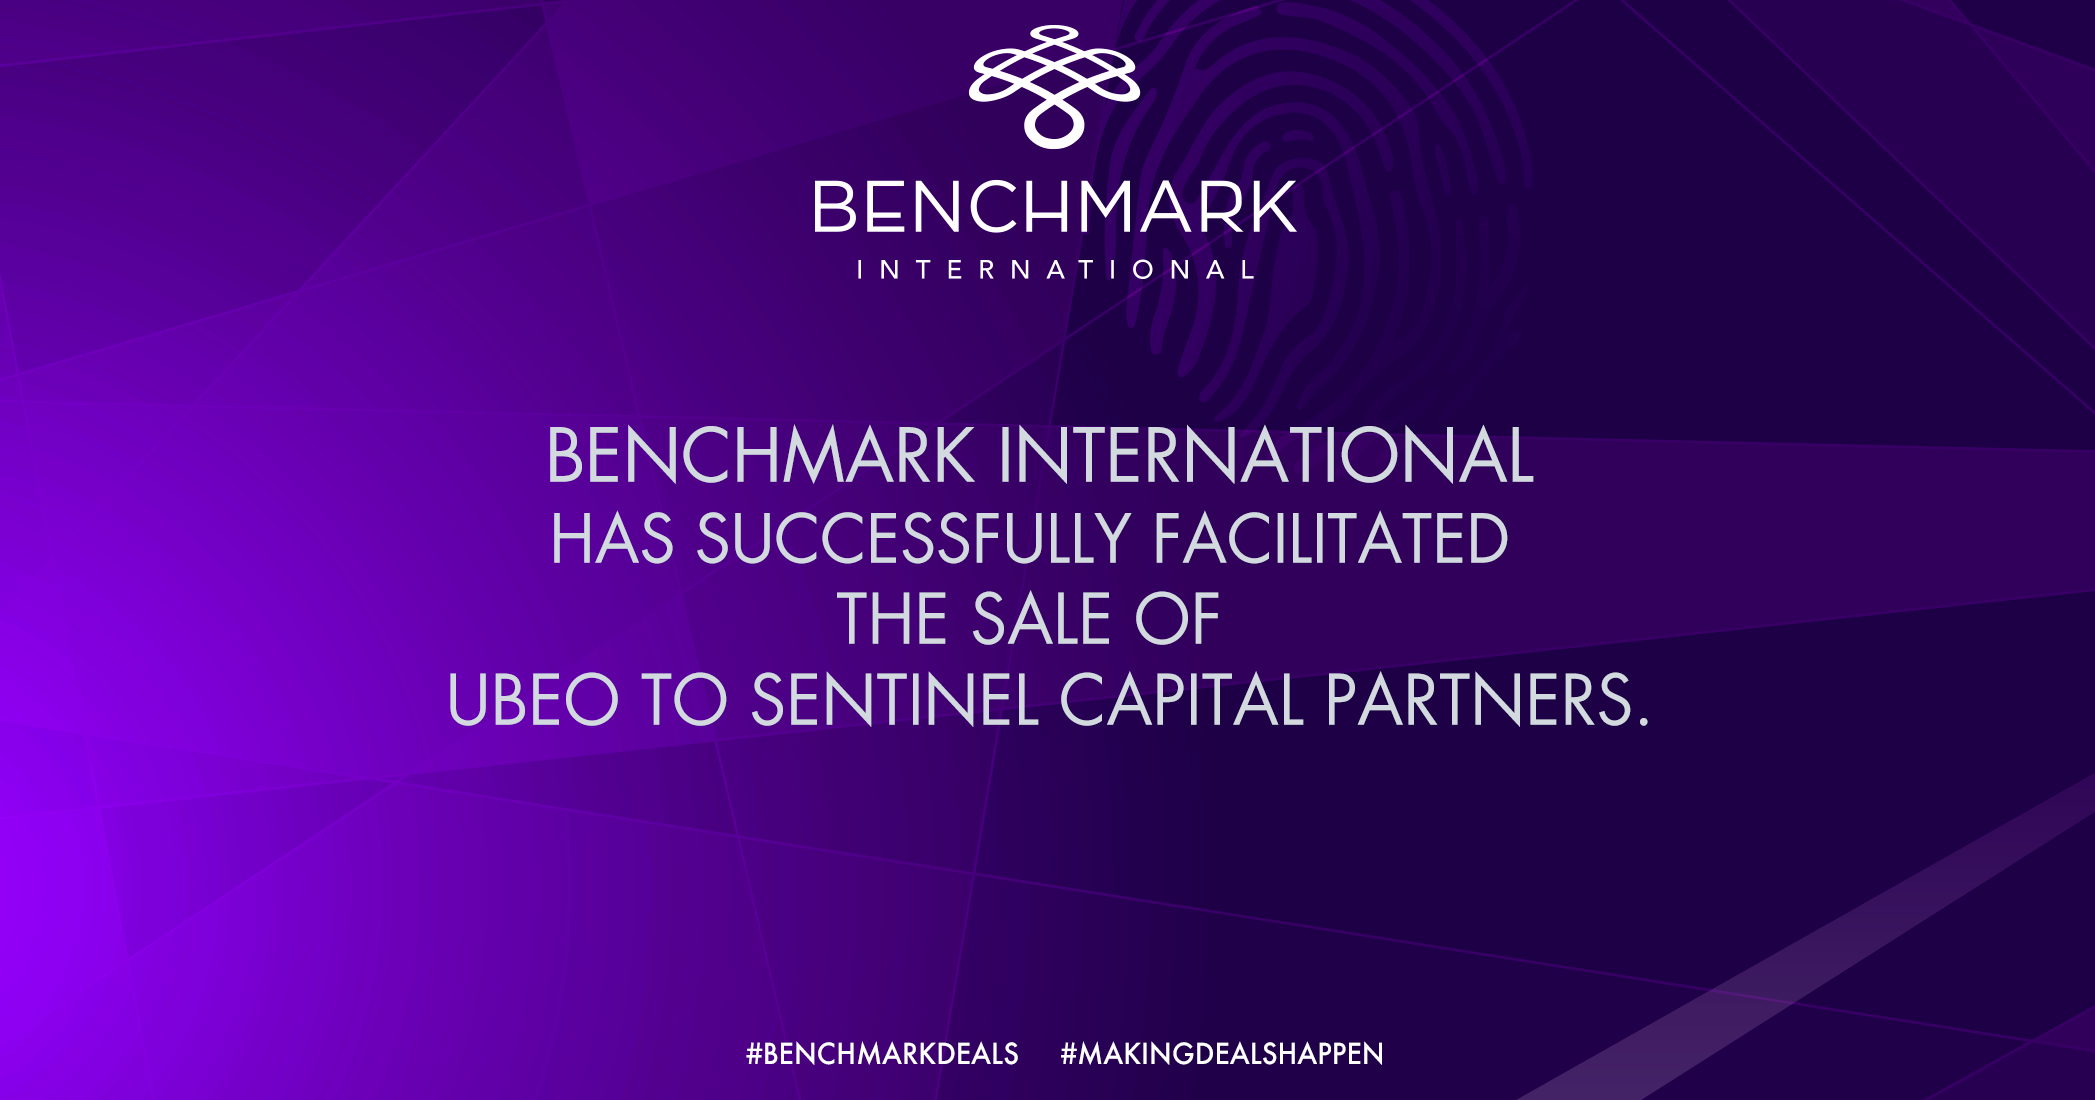 Benchmark International Facilitates the Acquisition of UBEO Business Services to Sentinel Capital Partners